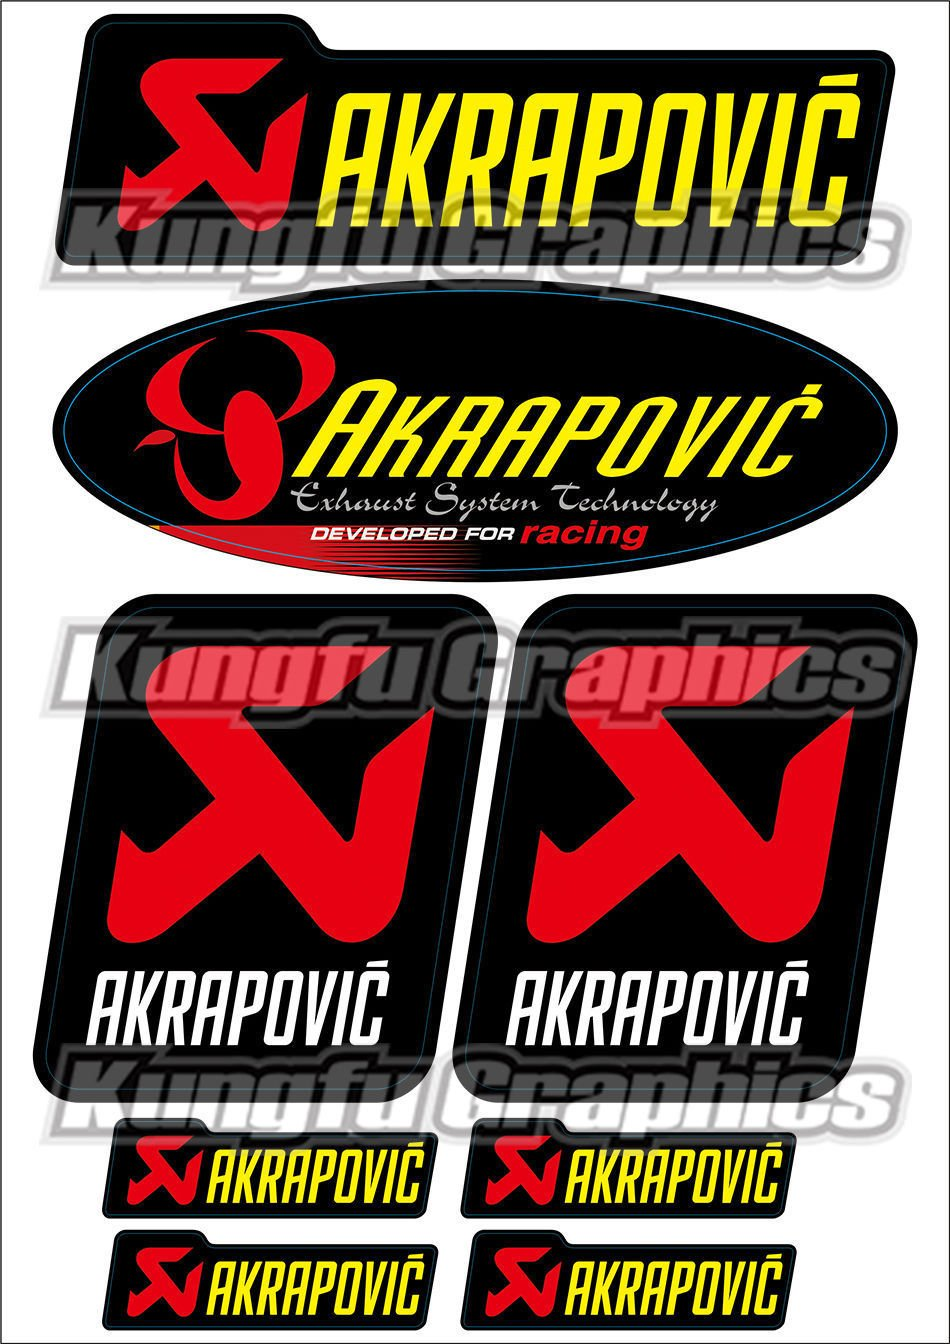 Kungfu Graphics Akrapovic Exhaust Micro Sponsor Logo Racing Sticker Sheet Universal (7.2x 10.2 inch), Black HUMA ART CREATIVE CO. LTD COMINU019987